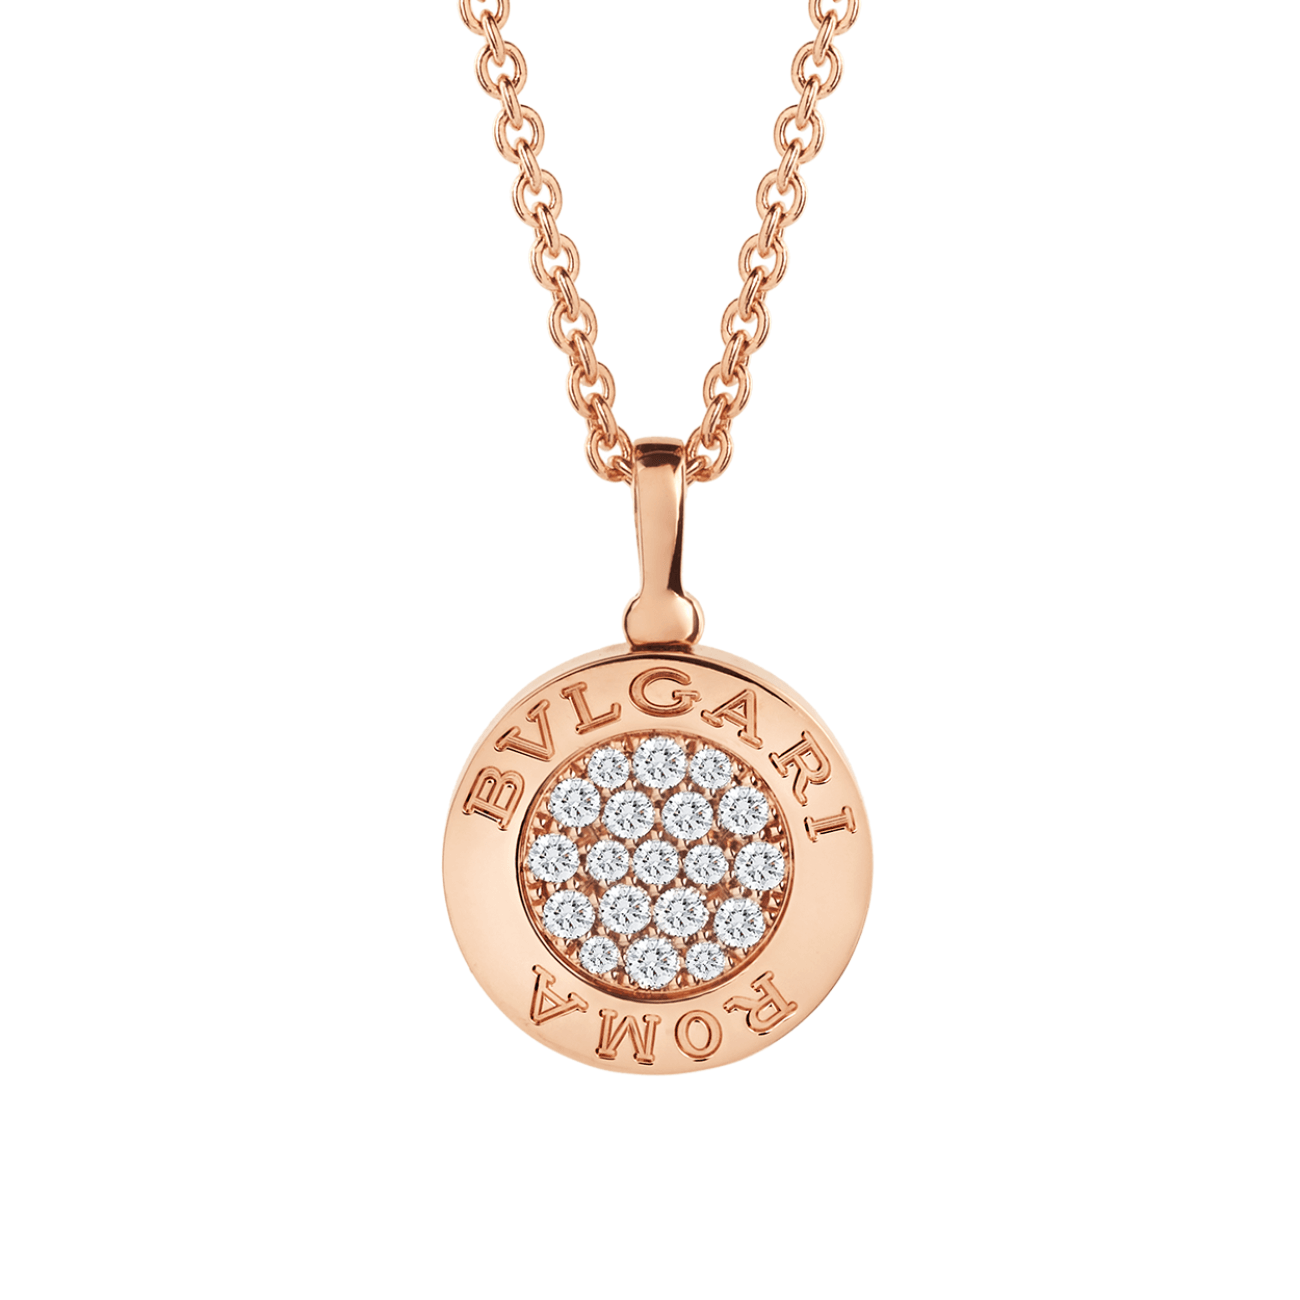 BVLGARI Jewelry - BVLGARI BVLGARI NECKLACE 350815 | Manfredi Jewels